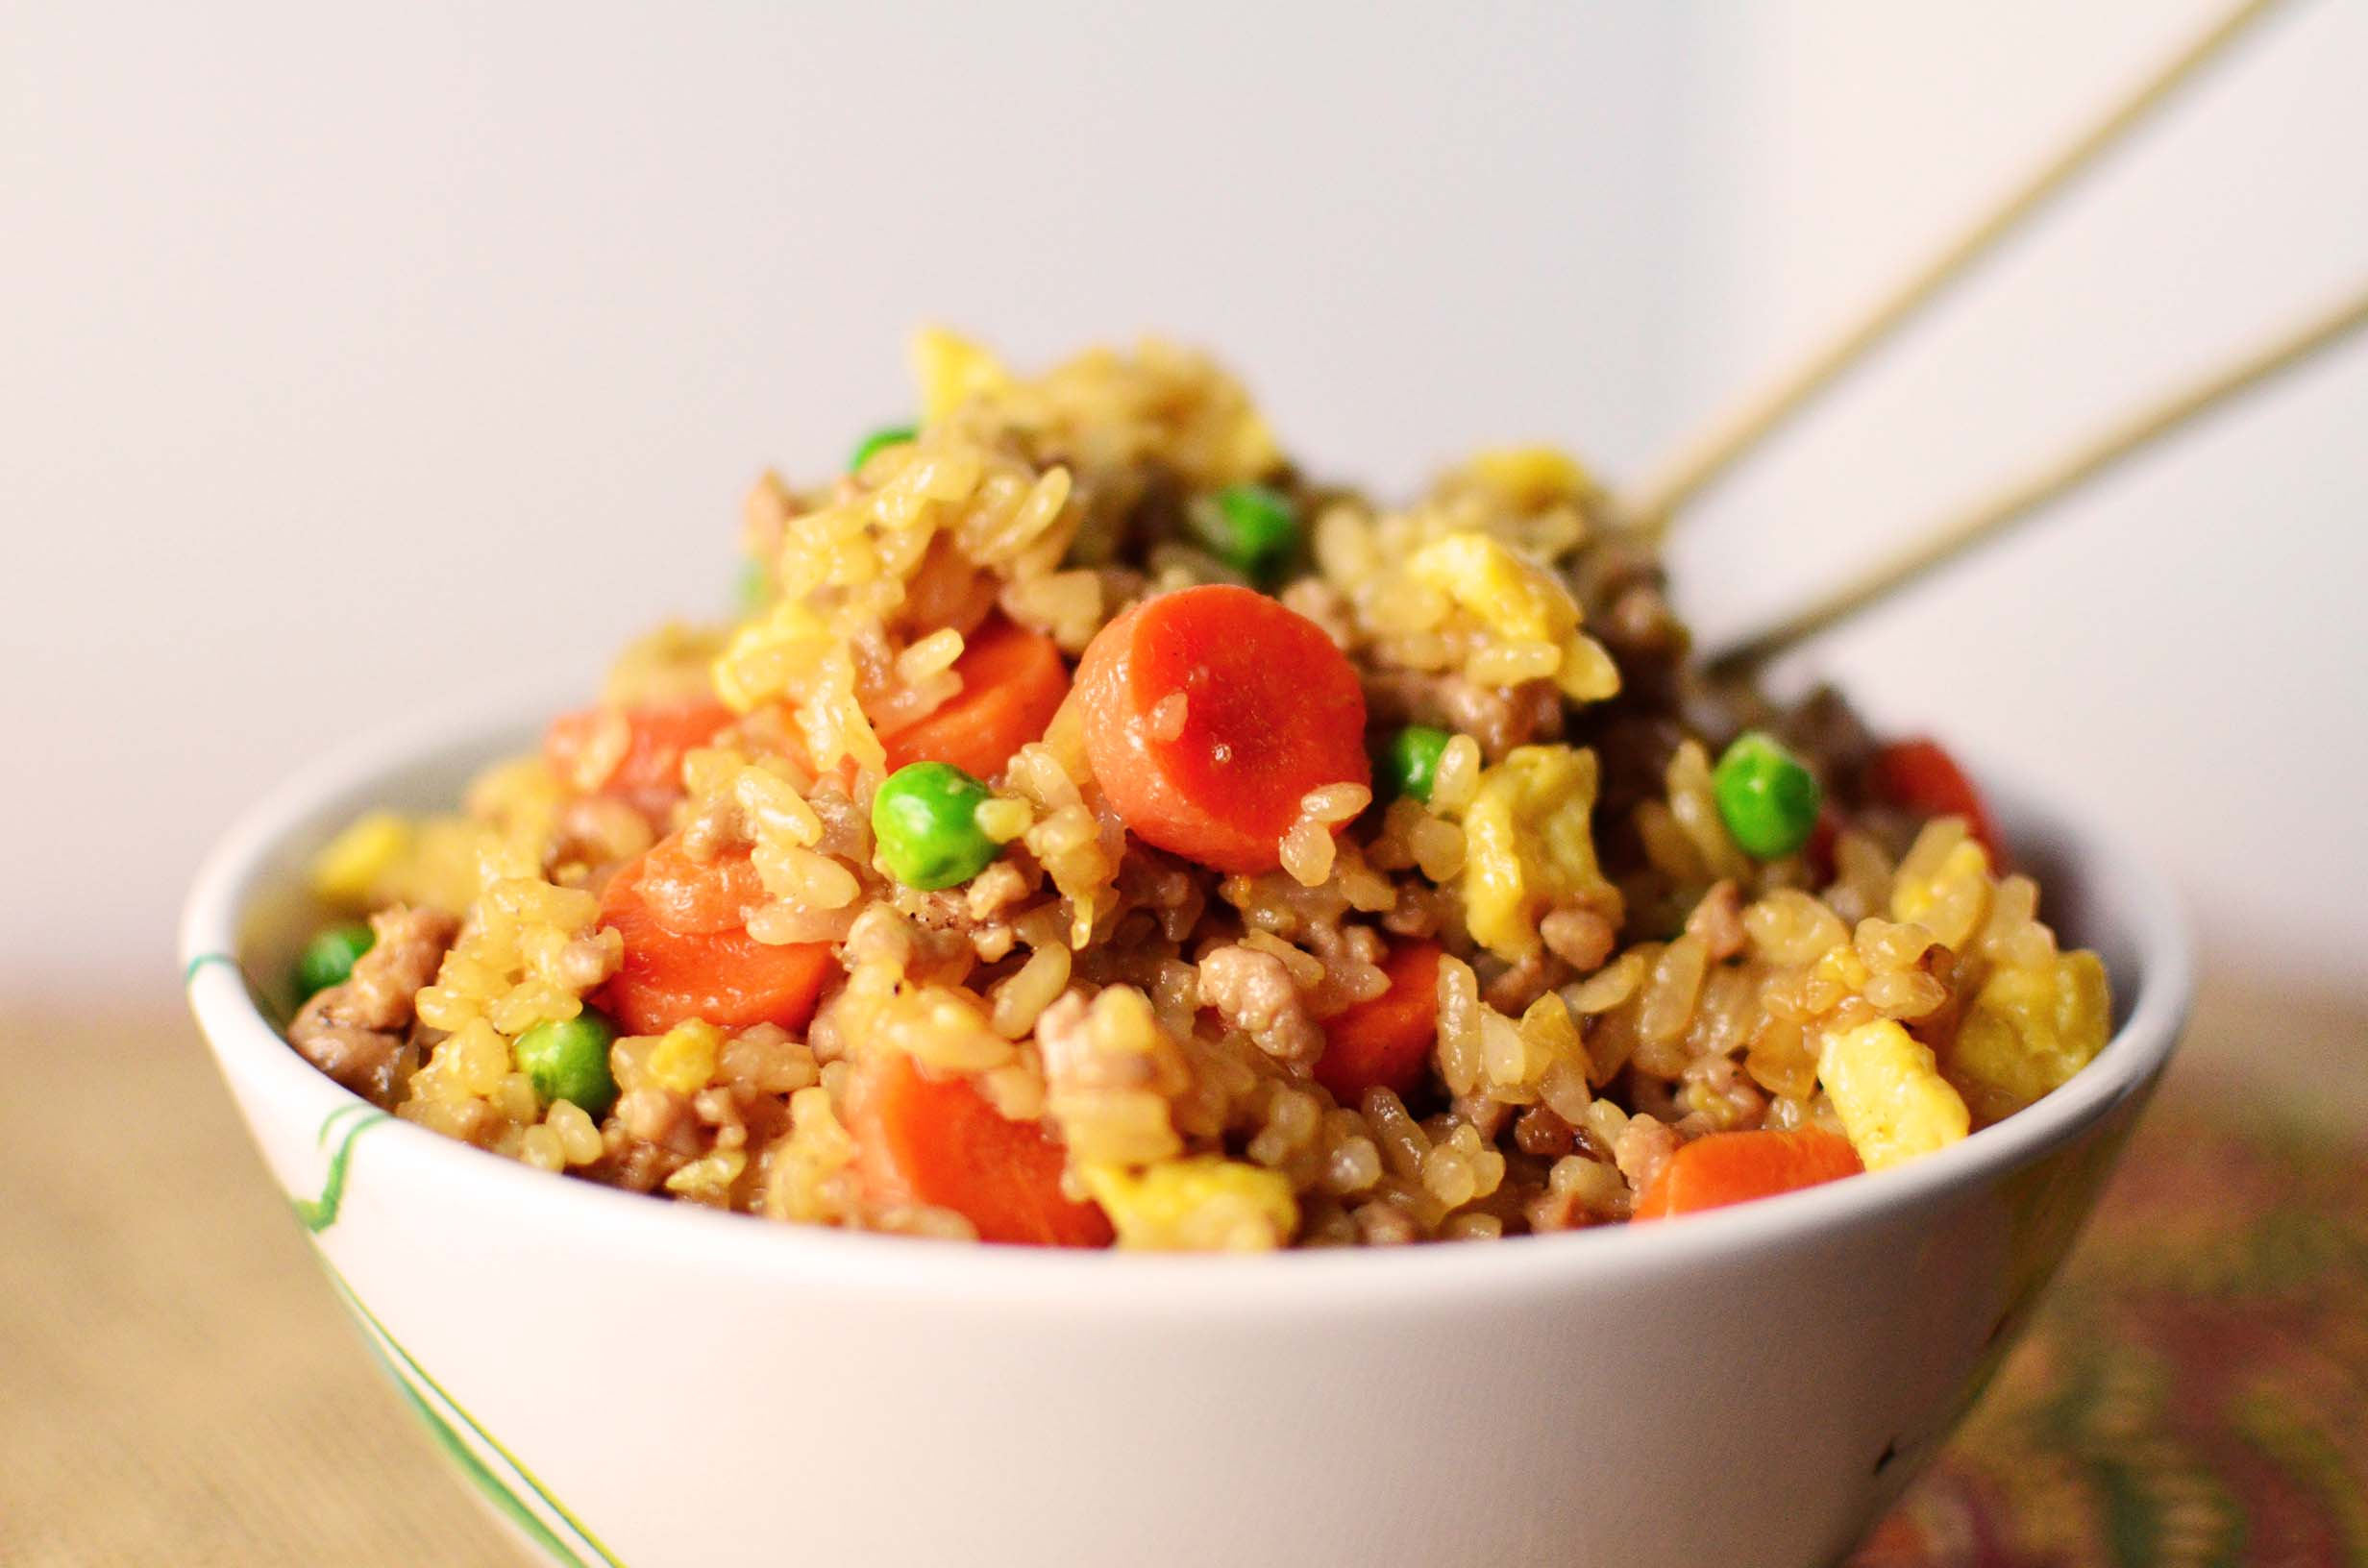 fried recipe for fried rice fried rice cooking light of egg fried rice ...